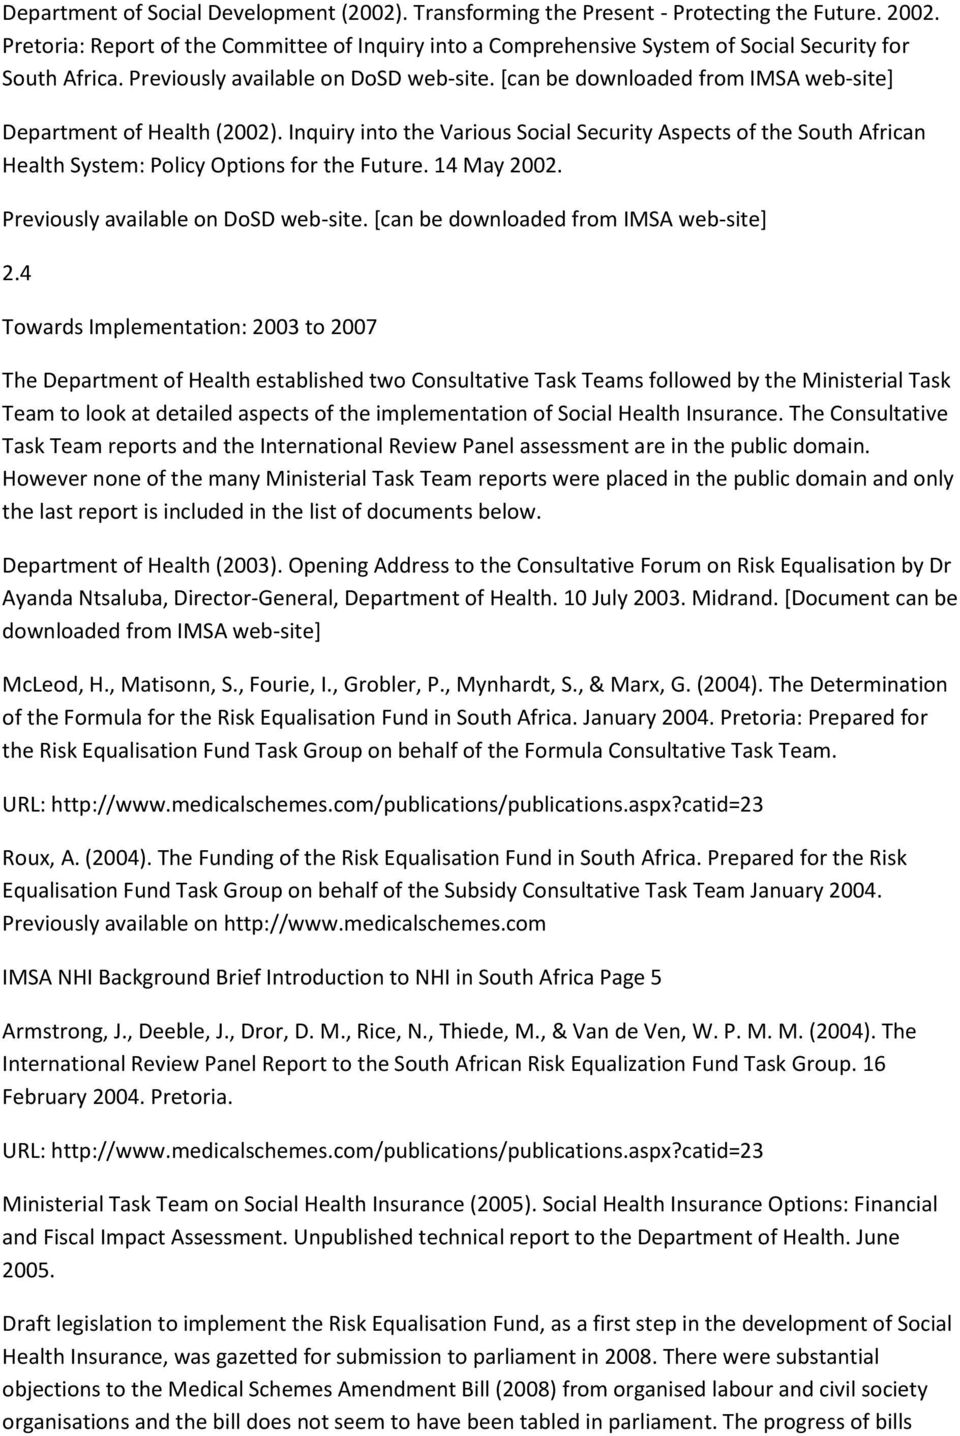 [can be downloaded from IMSA web-site] Department of Health (2002). Inquiry into the Various Social Security Aspects of the South African Health System: Policy Options for the Future. 14 May 2002.